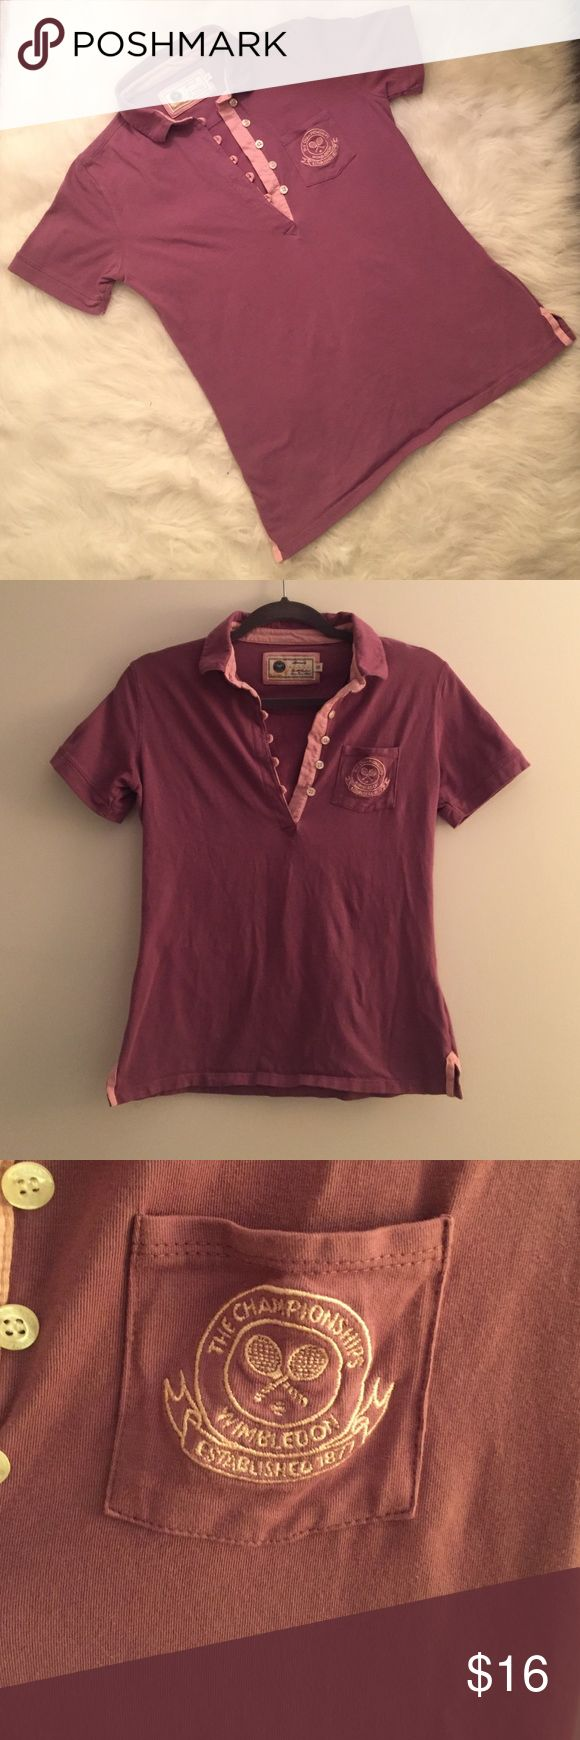 Official Wimbledon Championships Lady's Polo Ladies size 10 Wimbledon Tennis Championships Polo. Approved by the All England Lawn Tennis Club. Comes from a smoke/pet free home. Happy shopping! Wimbeldon Tops Button Down Shirts